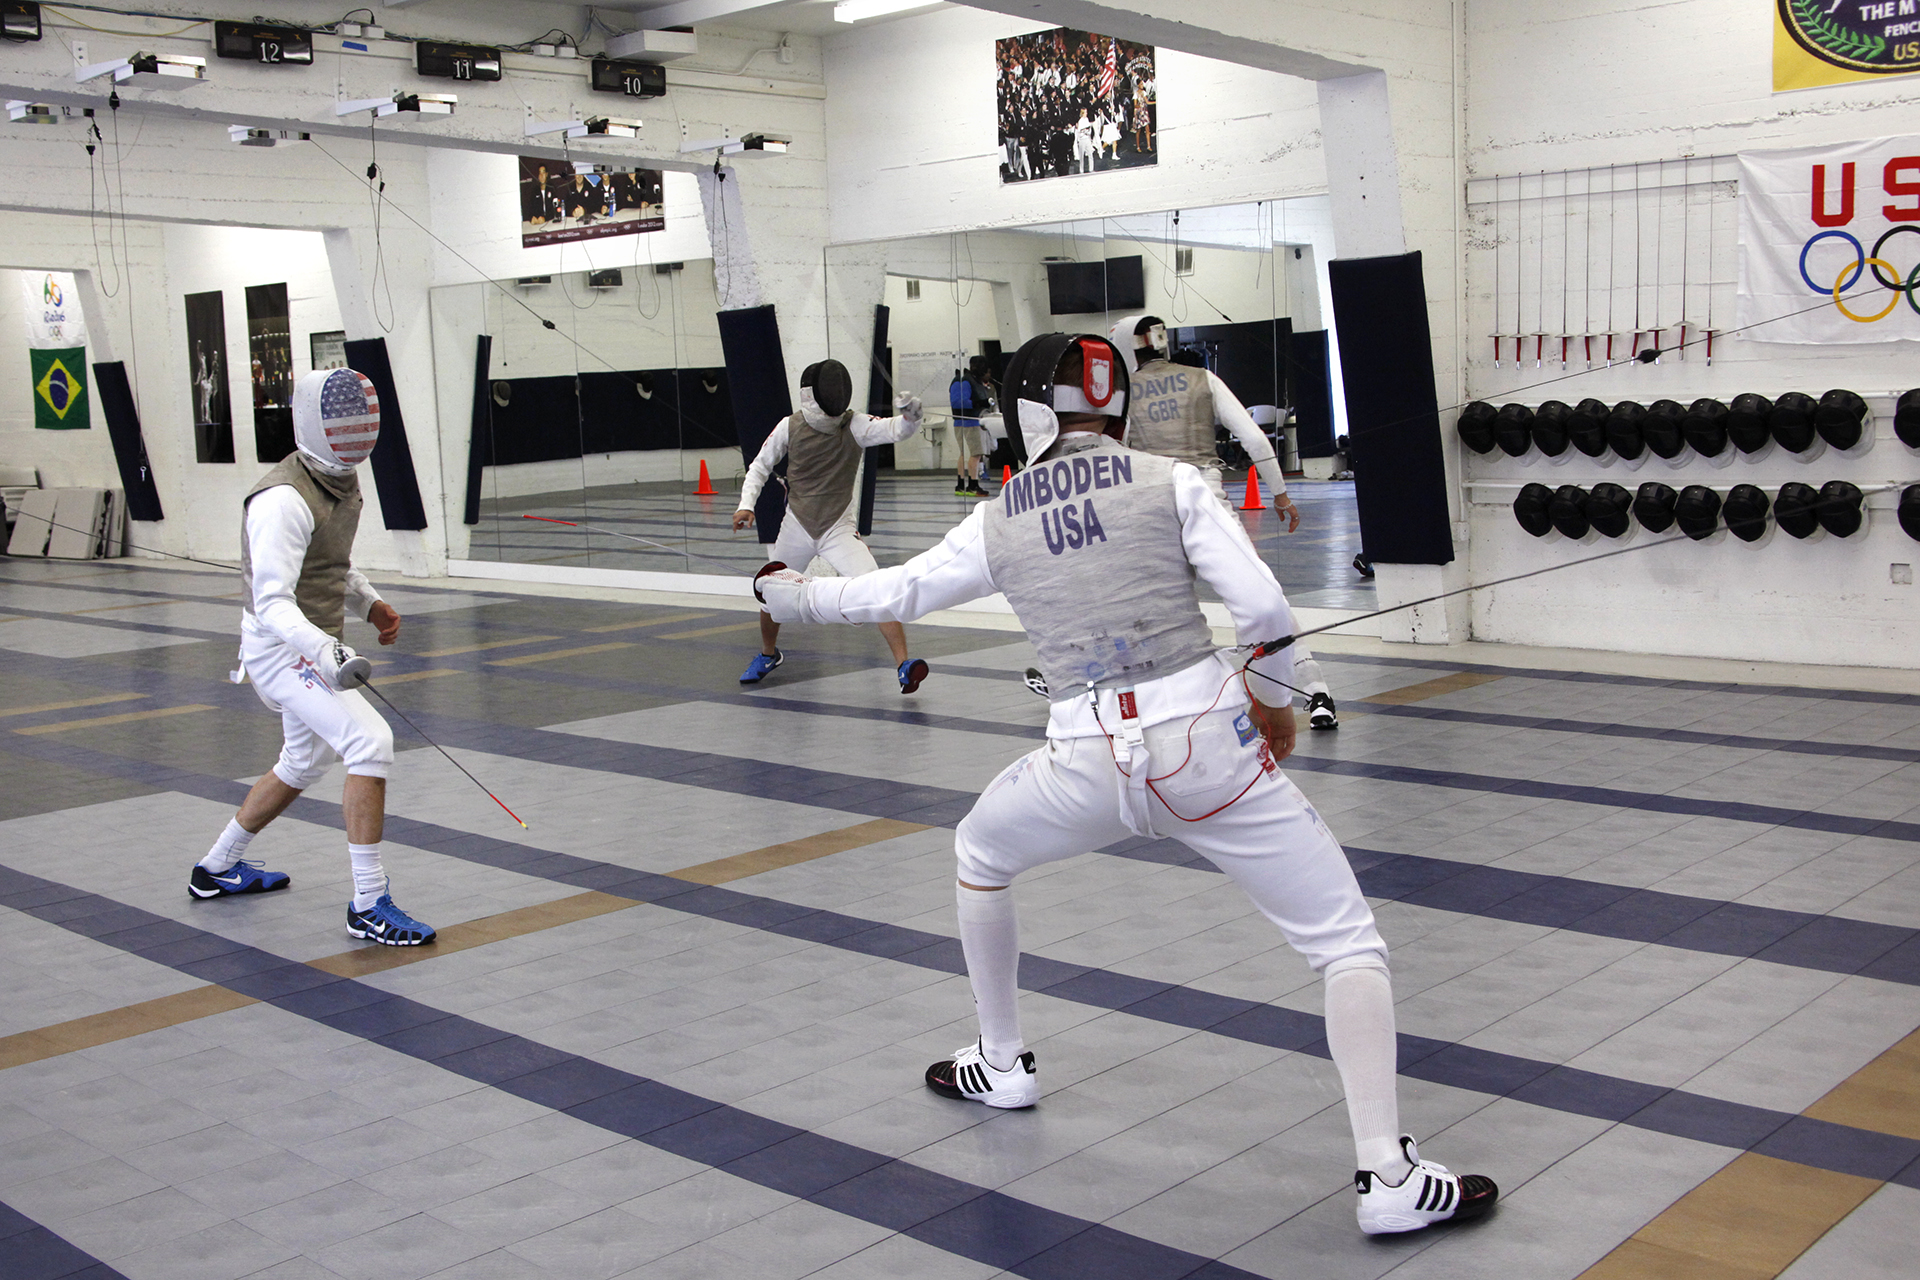 U.S. National fencing team athletes Gerek Meinhardt (left) and Race Imboden (right) practice their fencing techniques. Both will be heading to Rio to compete in the 2016 Olympics.